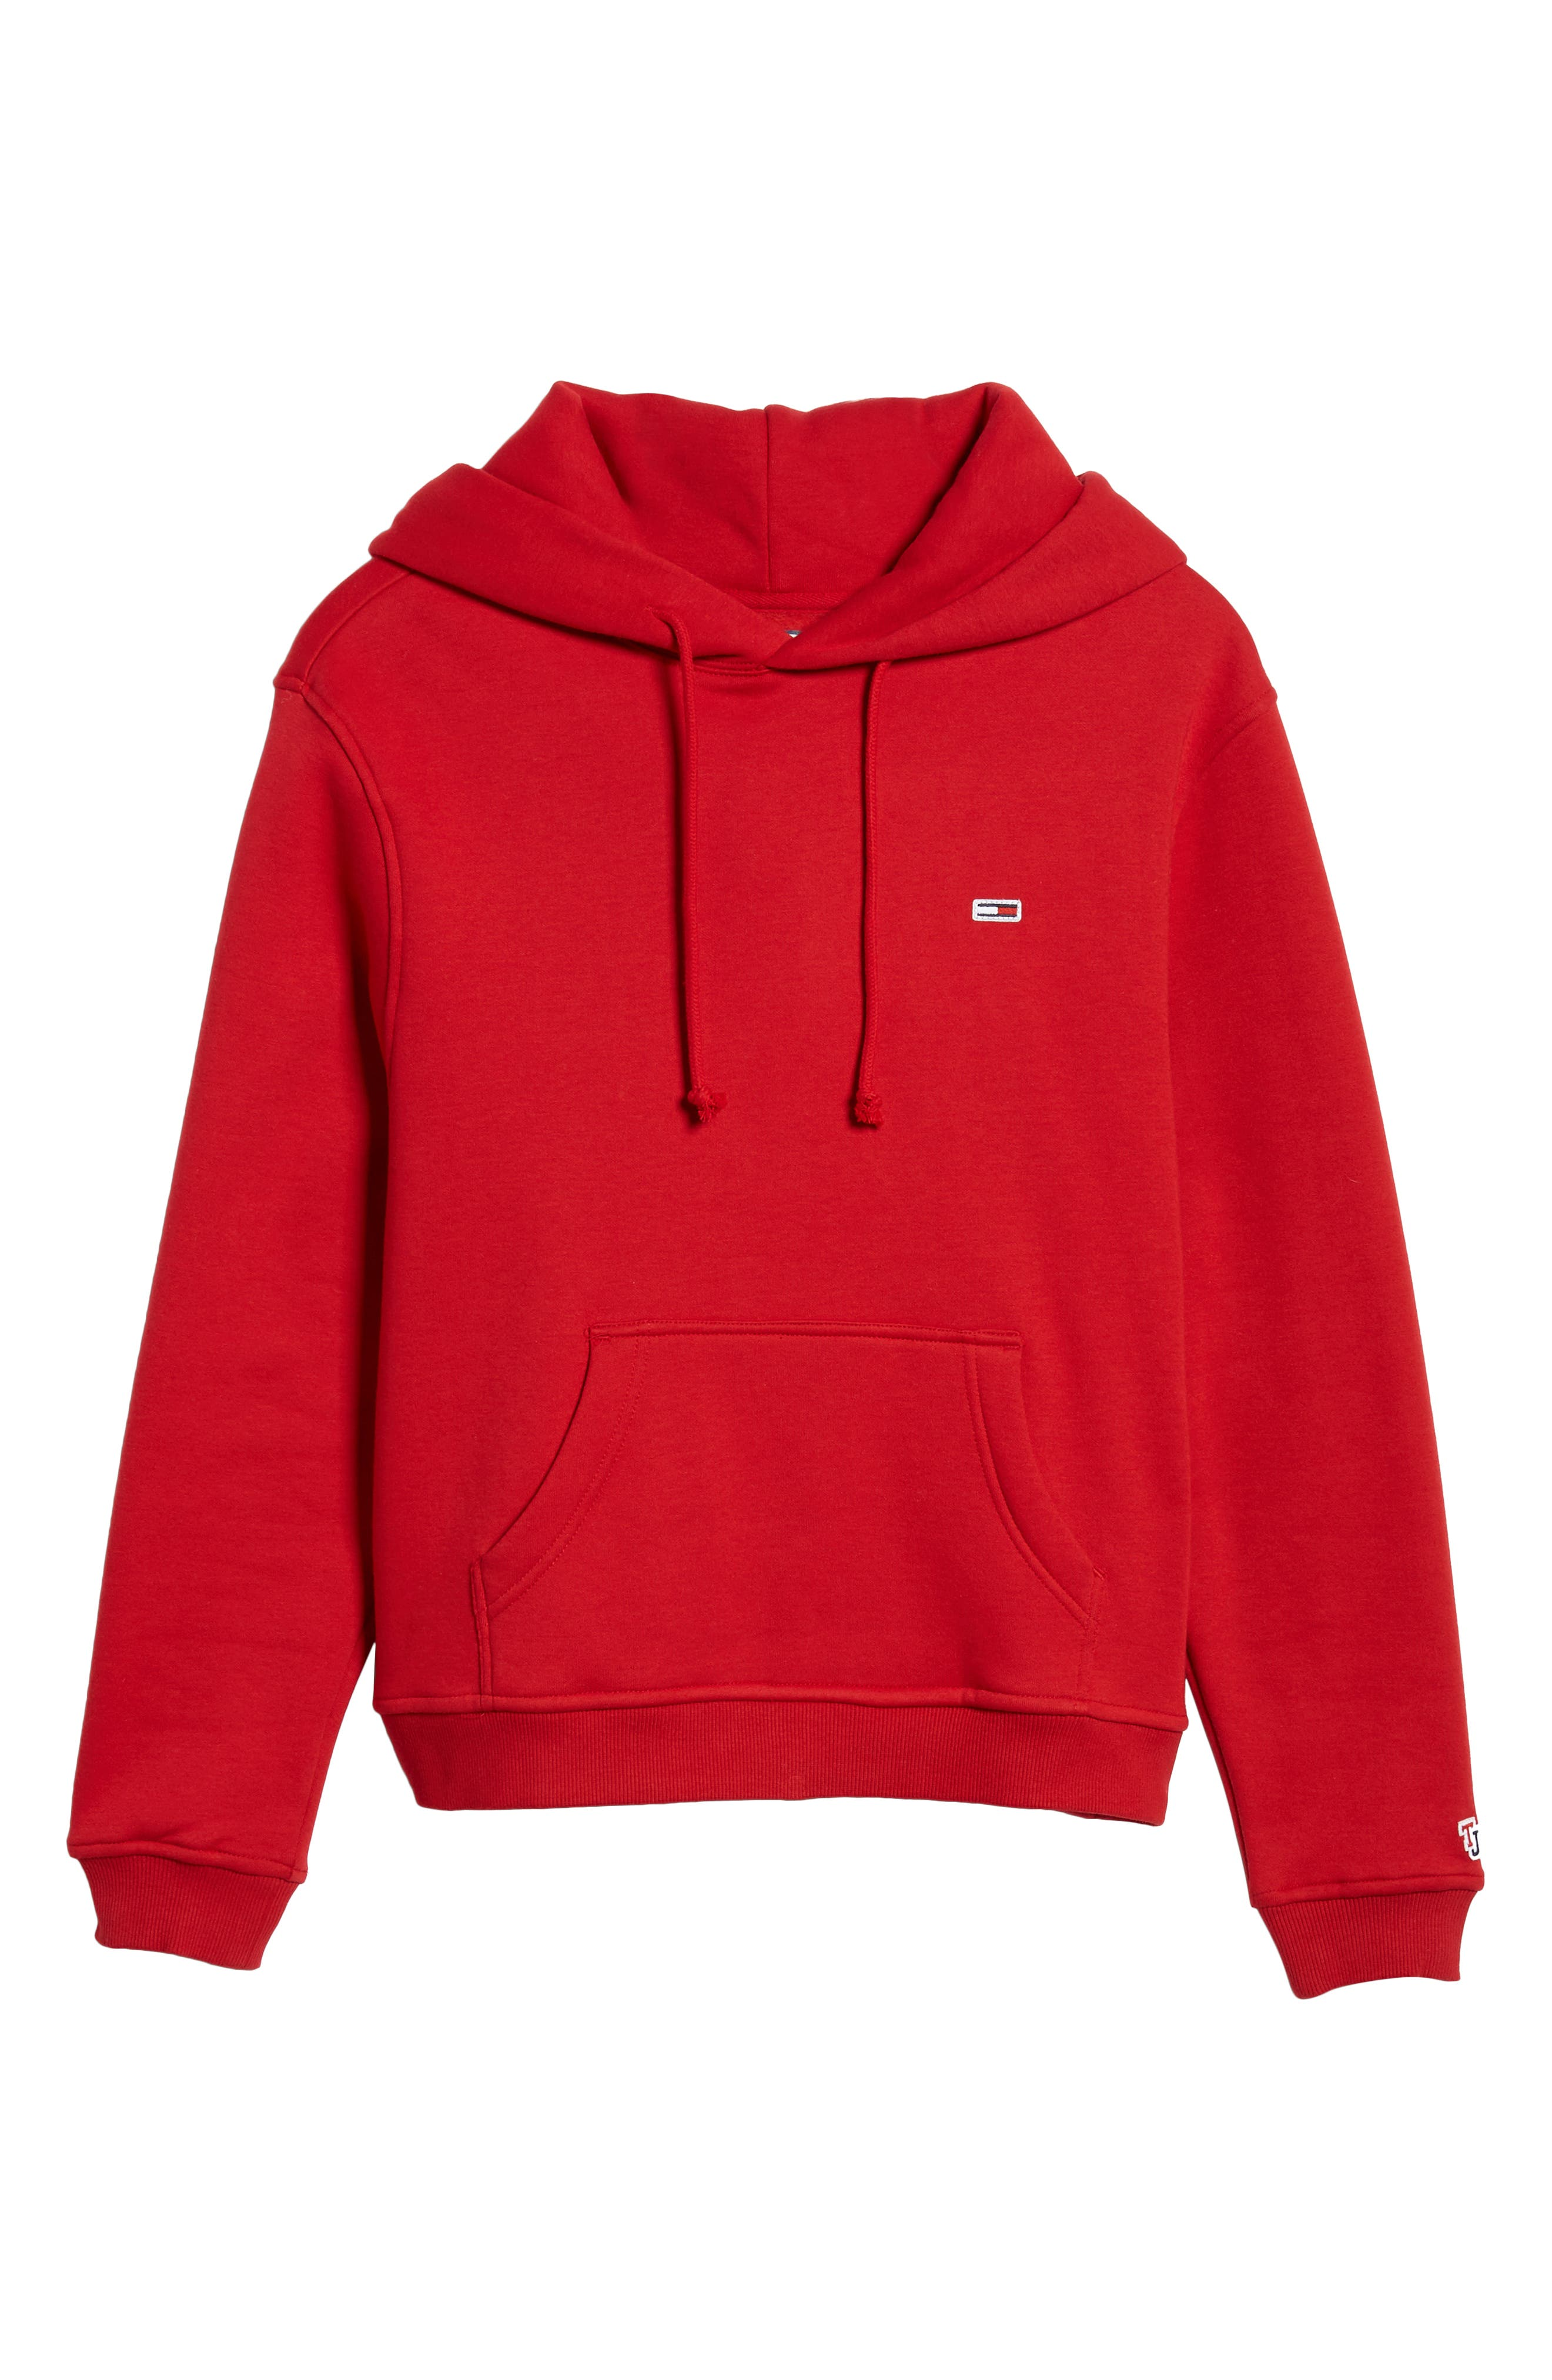 TJW Tommy Classics Hoodie,                             Alternate thumbnail 6, color,                             602